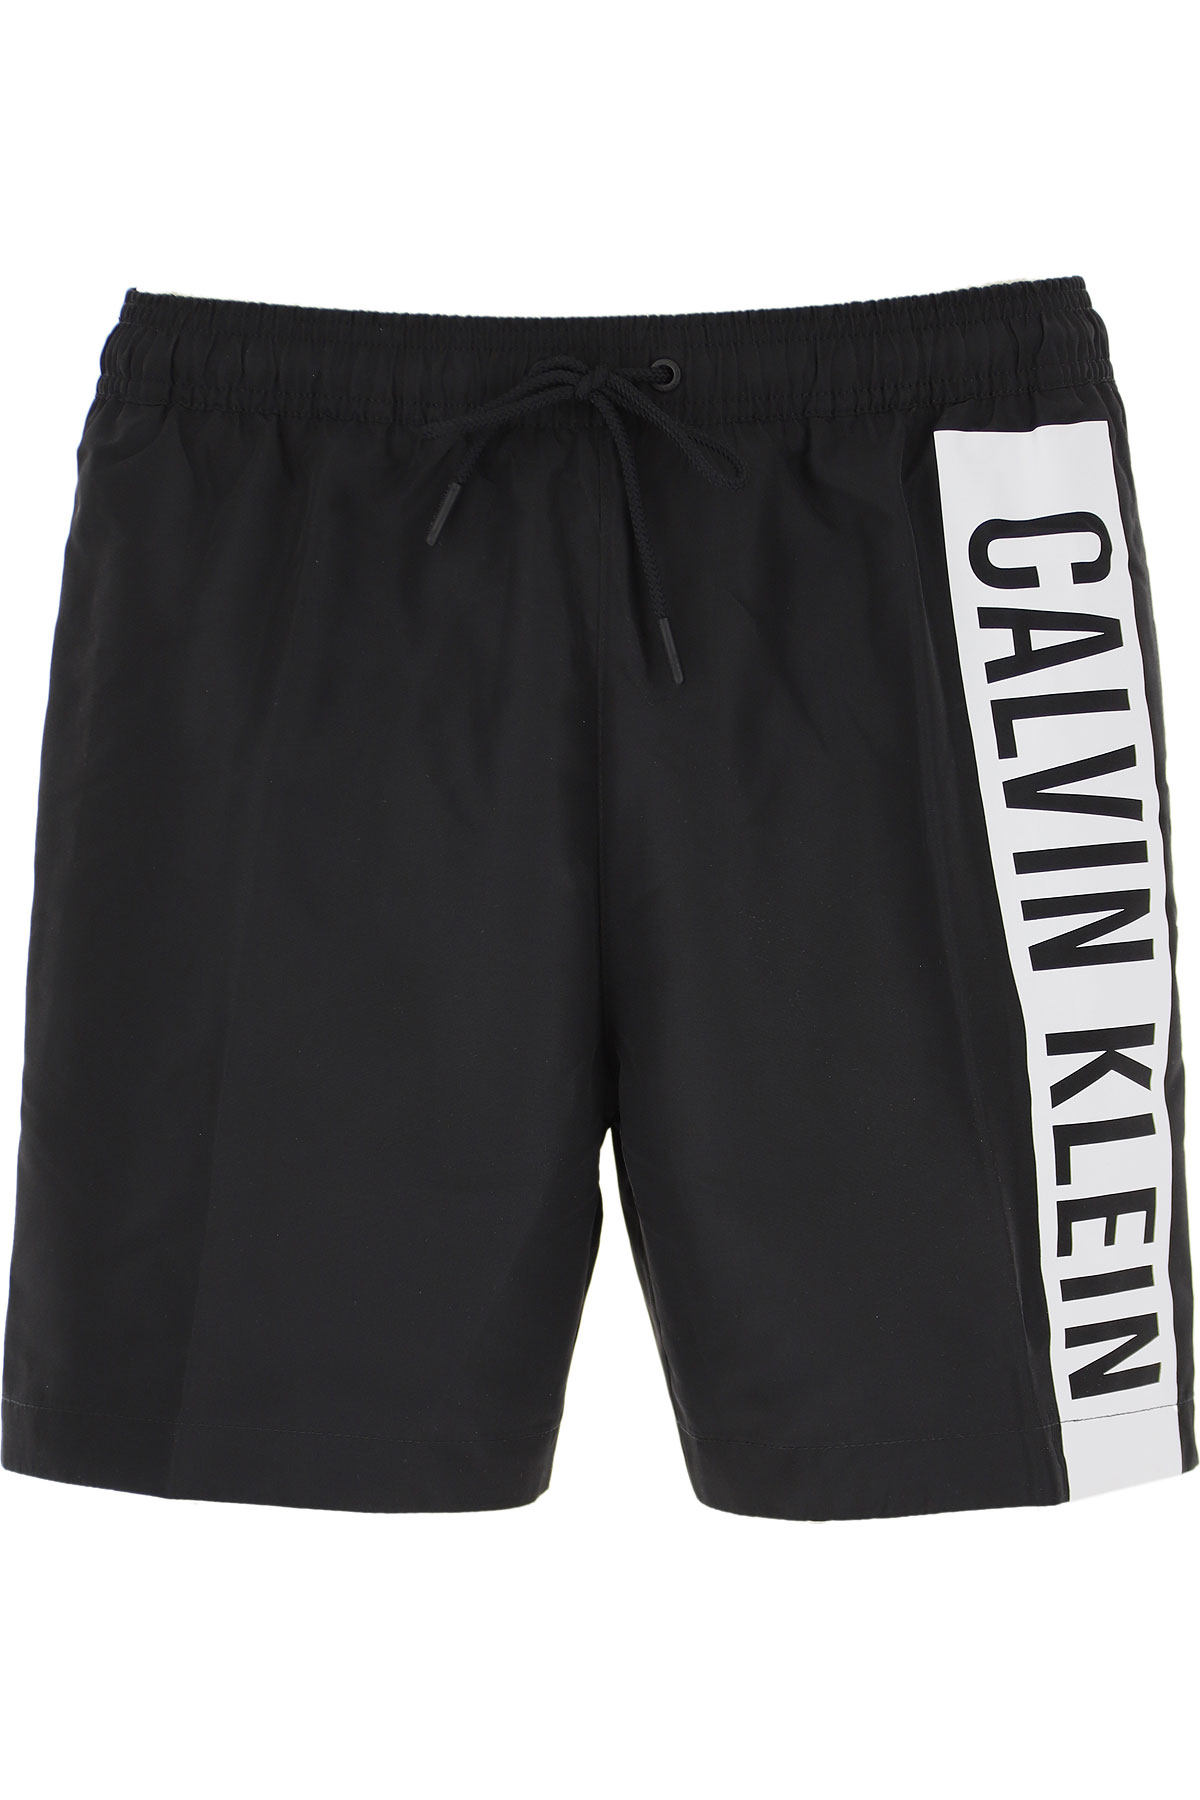 Calvin Klein Swim Briefs for Men On Sale, Black, polyester, 2019, S M L XL